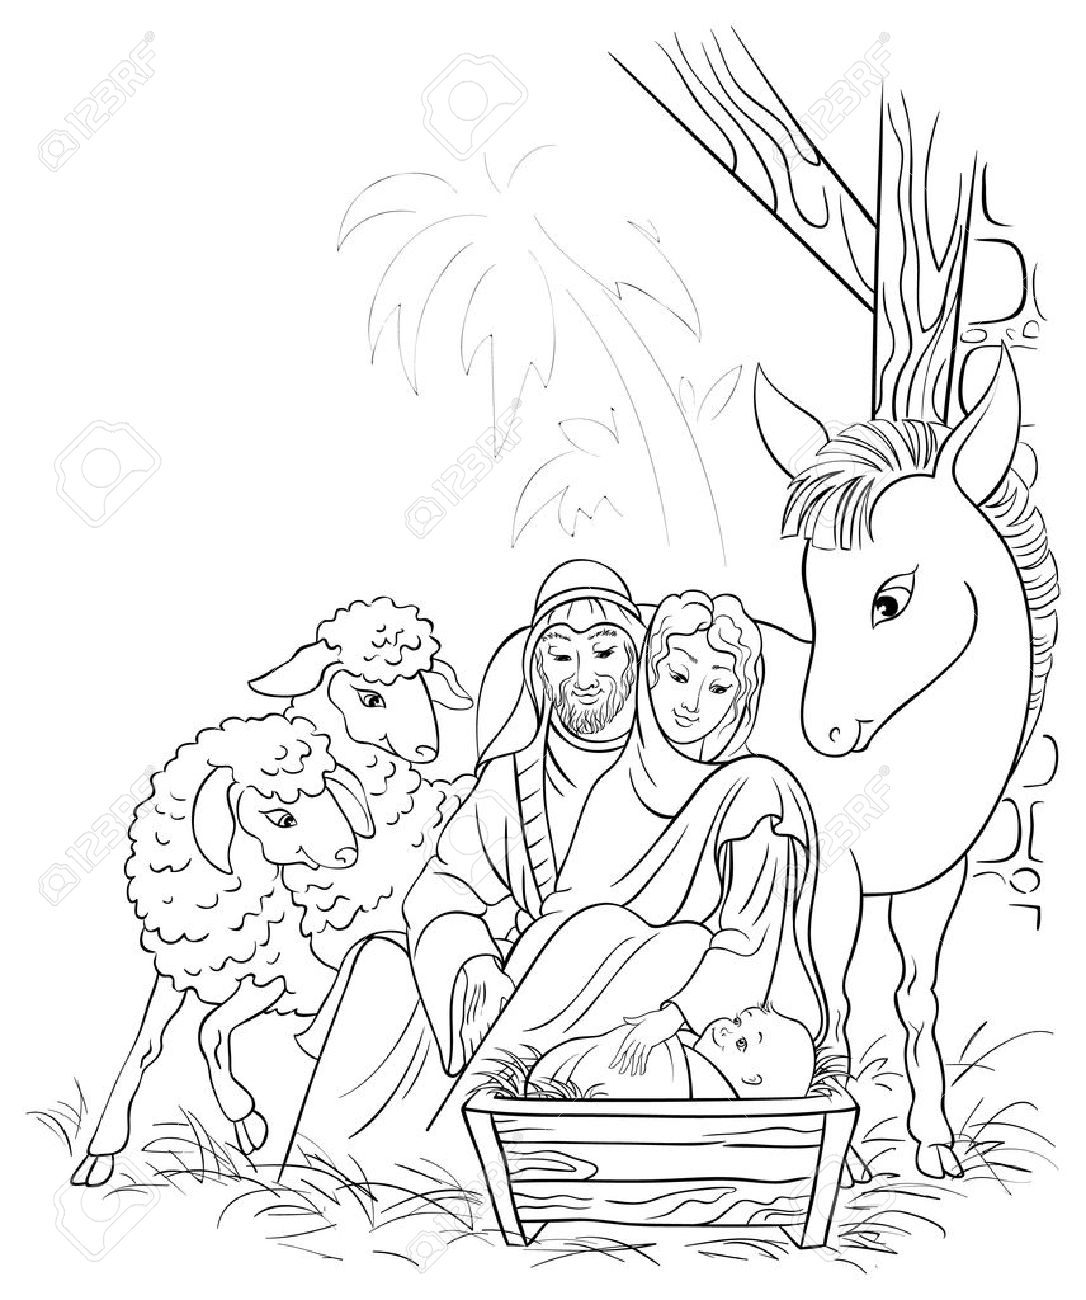 Black And White Illustration Of Christmas Nativity Scene With ...